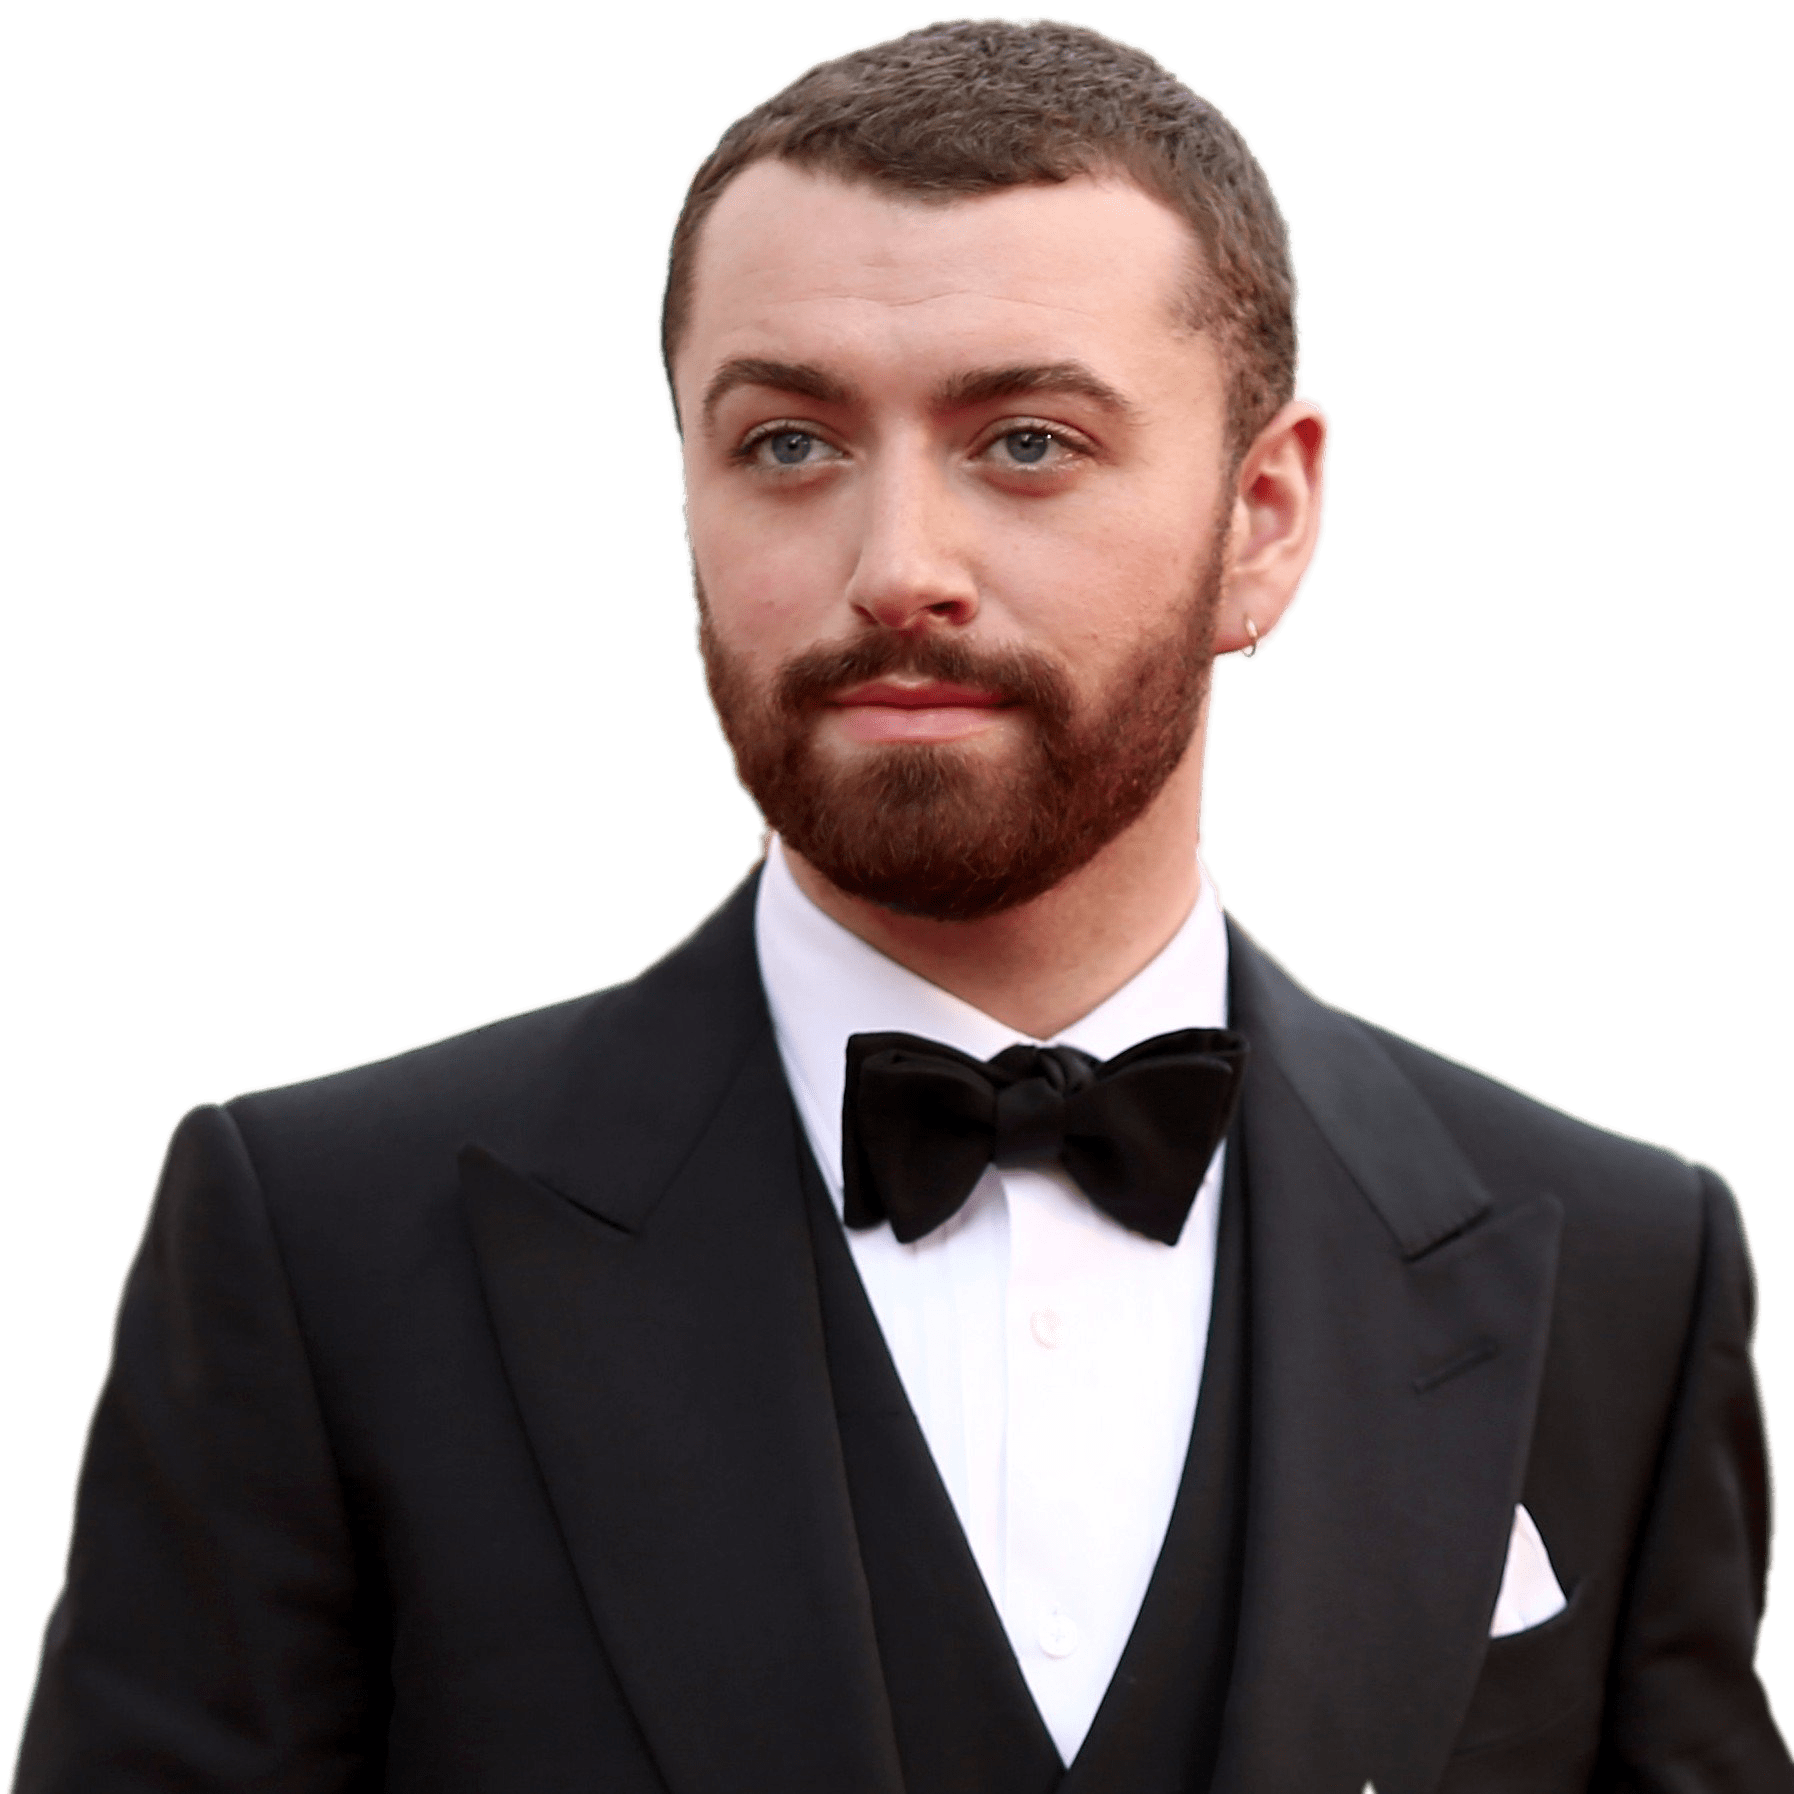 Sam Smith Wearing Tuxedo transparent PNG.